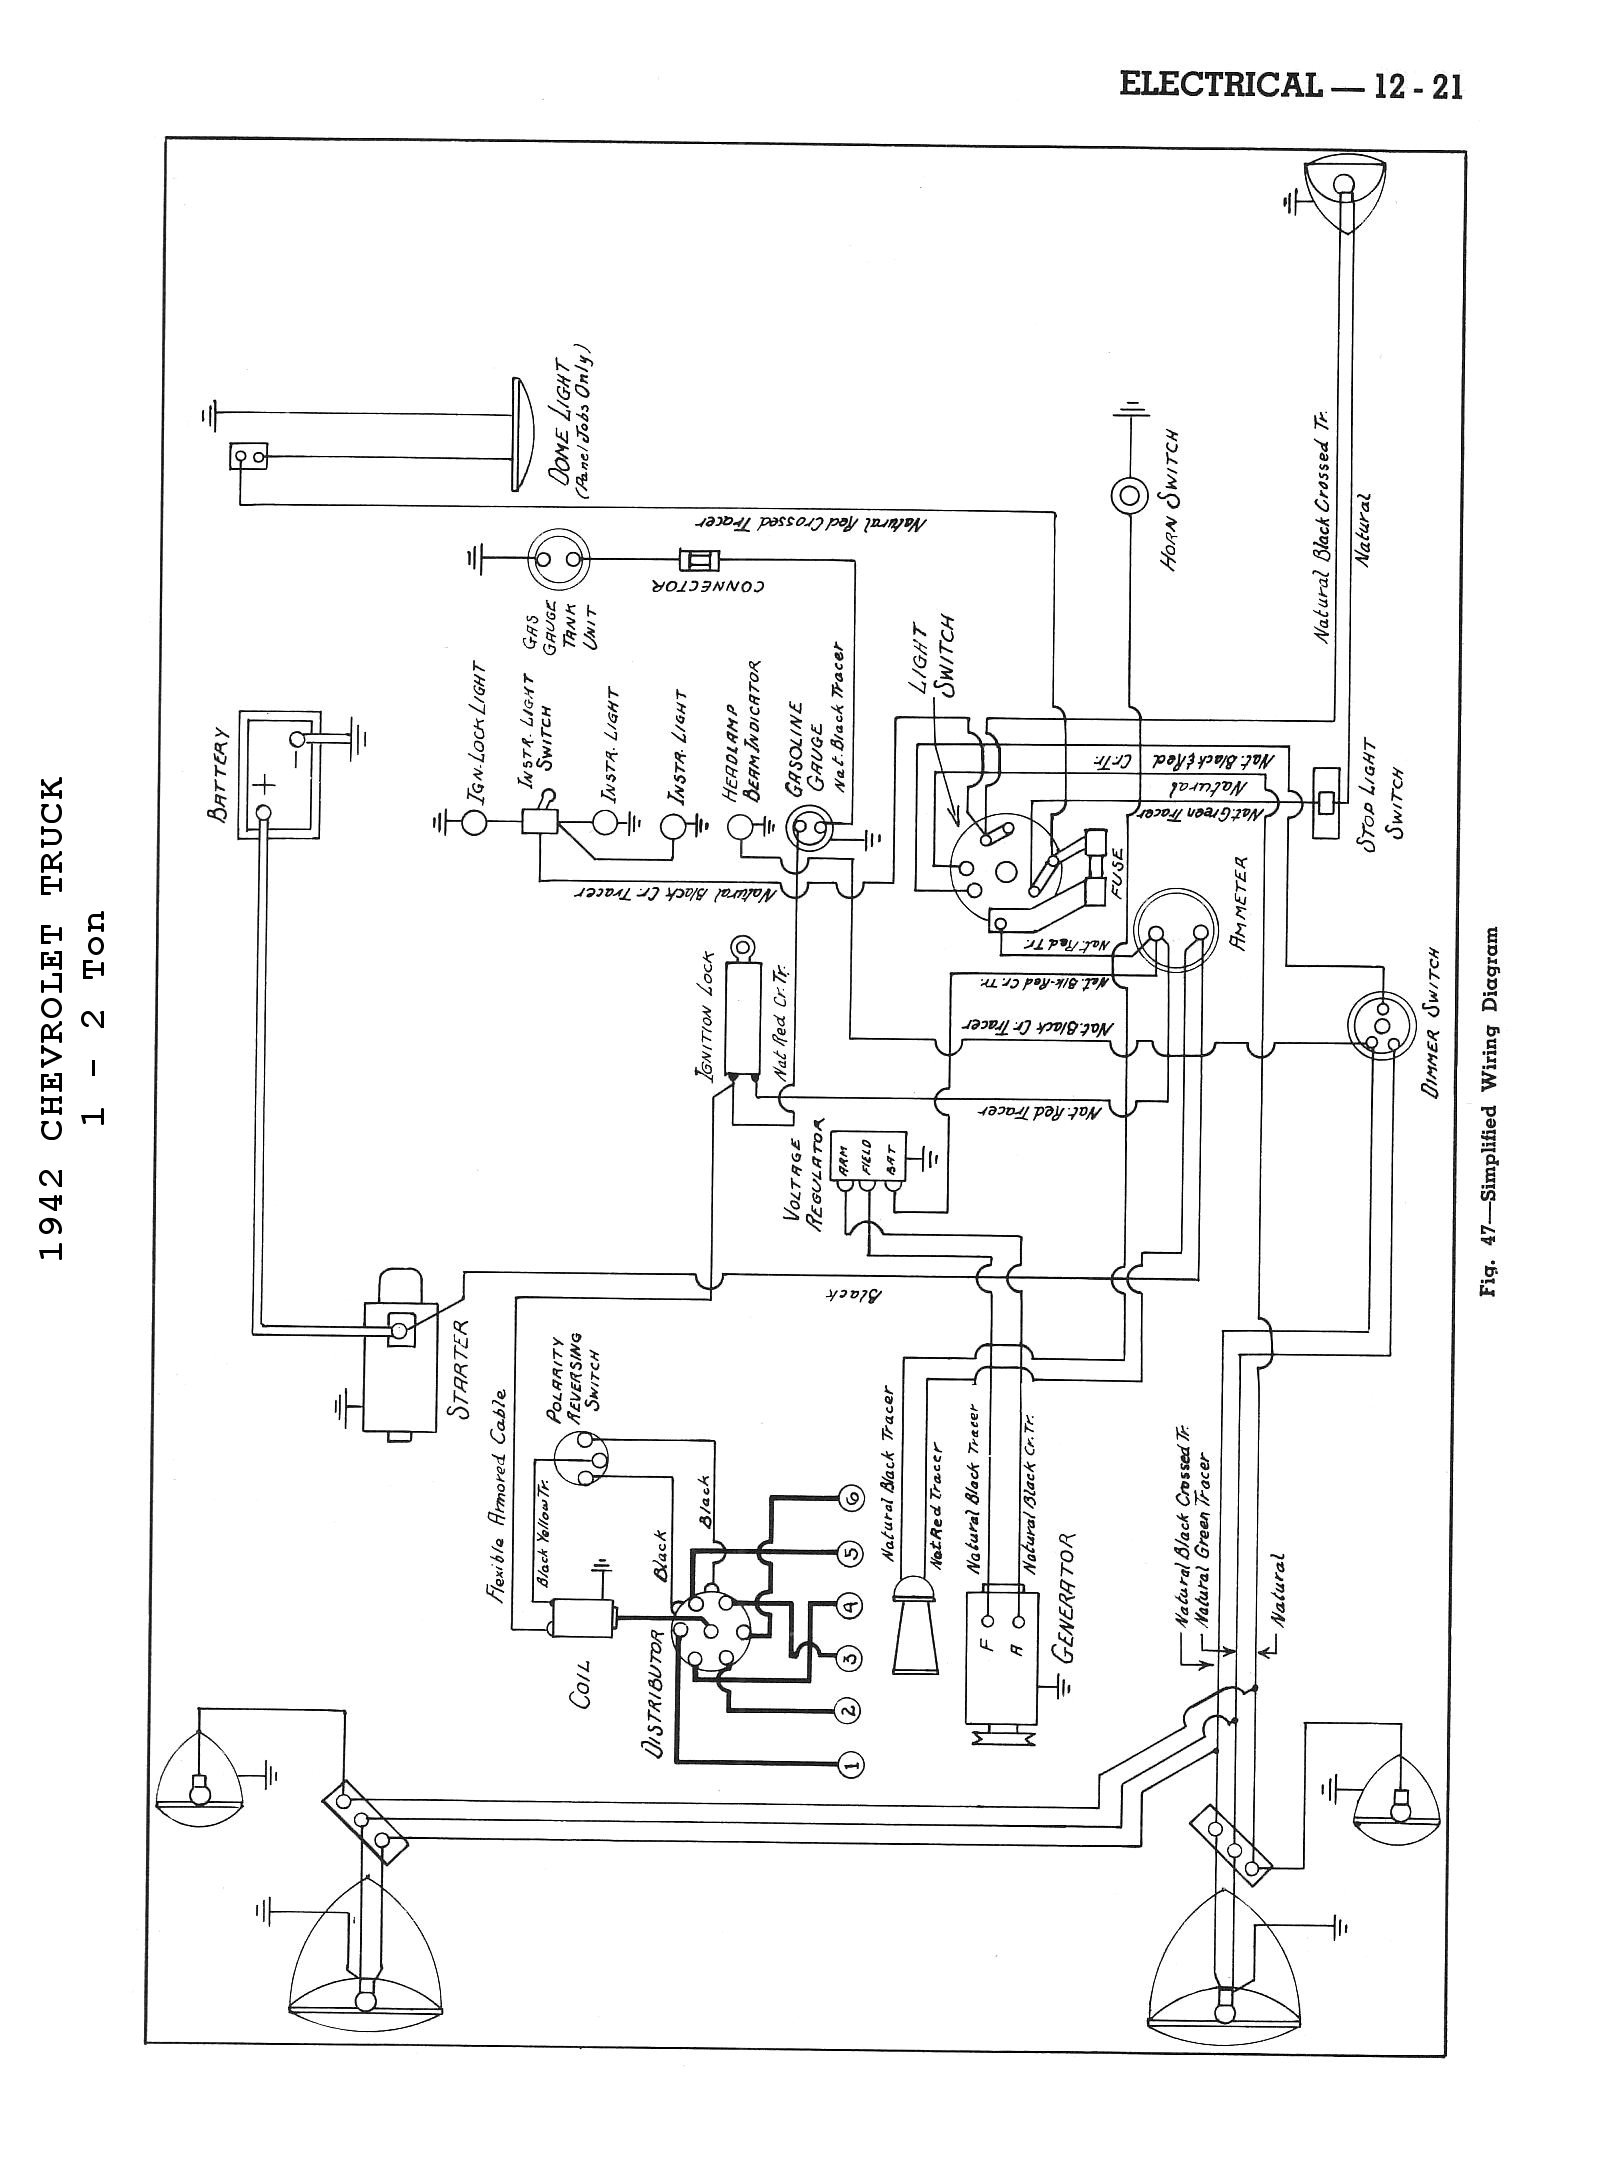 42cm4x2t1221 chevy wiring diagrams 1941 pontiac wiring harness at gsmx.co